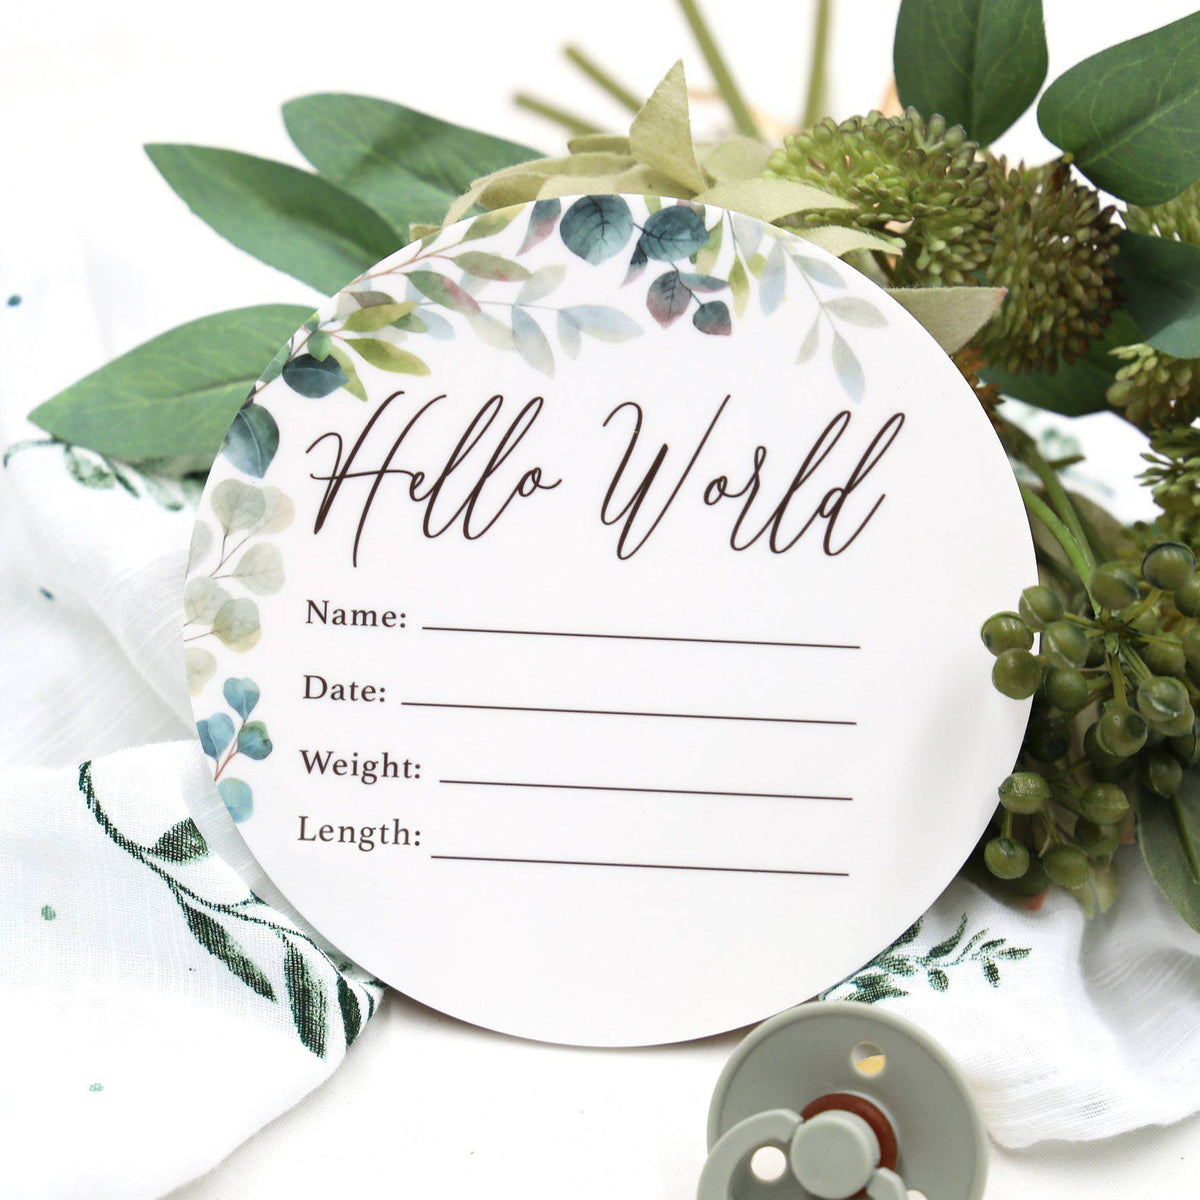 Birth Announcement Card- Hello World Leafy Foliage